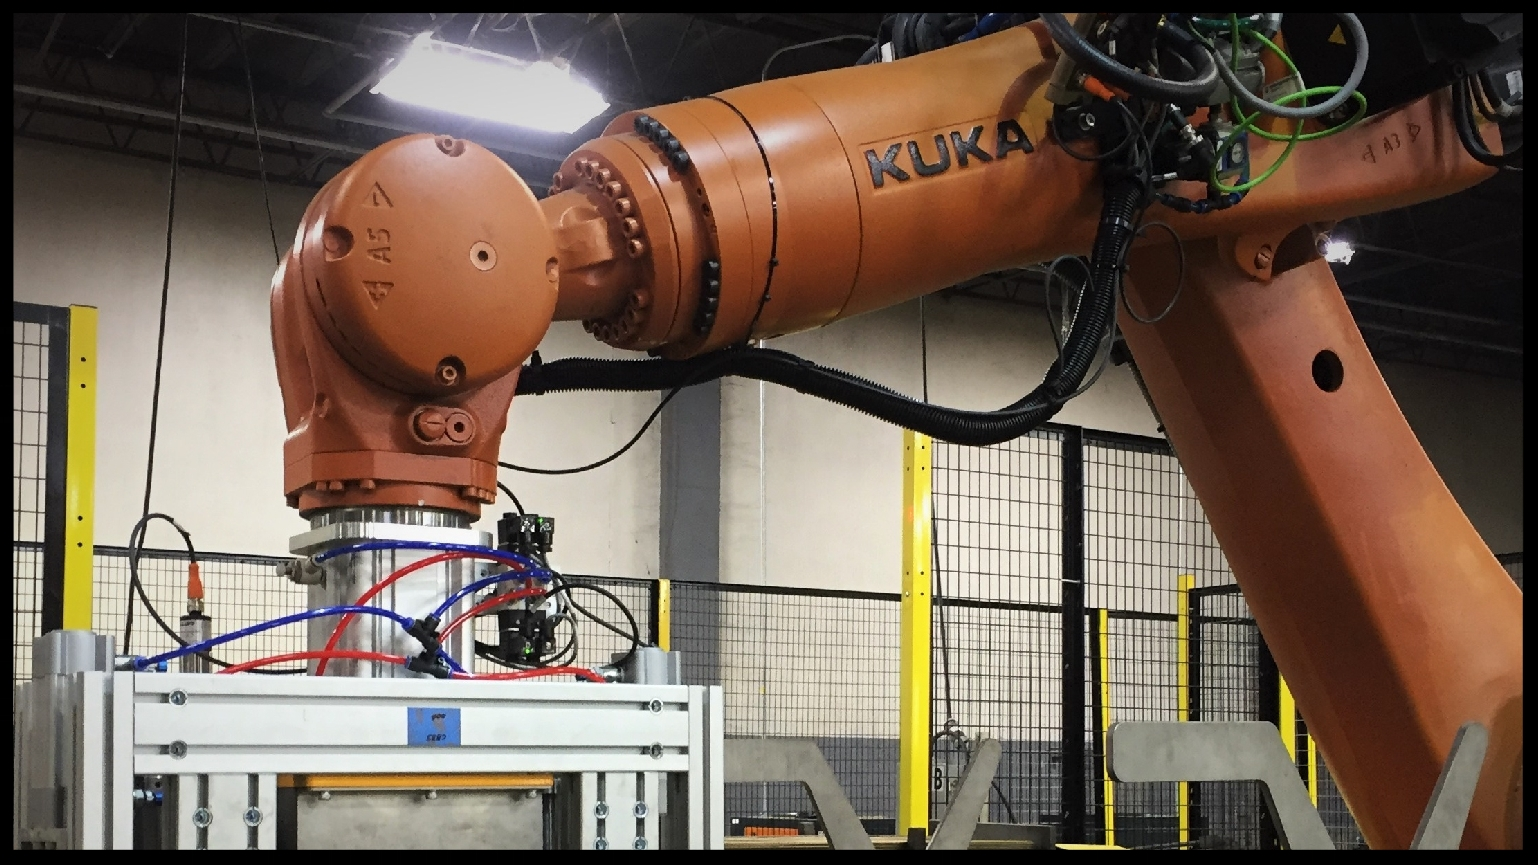 High Handling-Capacity Robotic Solutions - Industrial robotics installations often involve high-capacity payloads with hazardous tooling. These robotic work cells must be enclosed, with automatic worker safety precautions such as light curtains to stop the process when triggered.